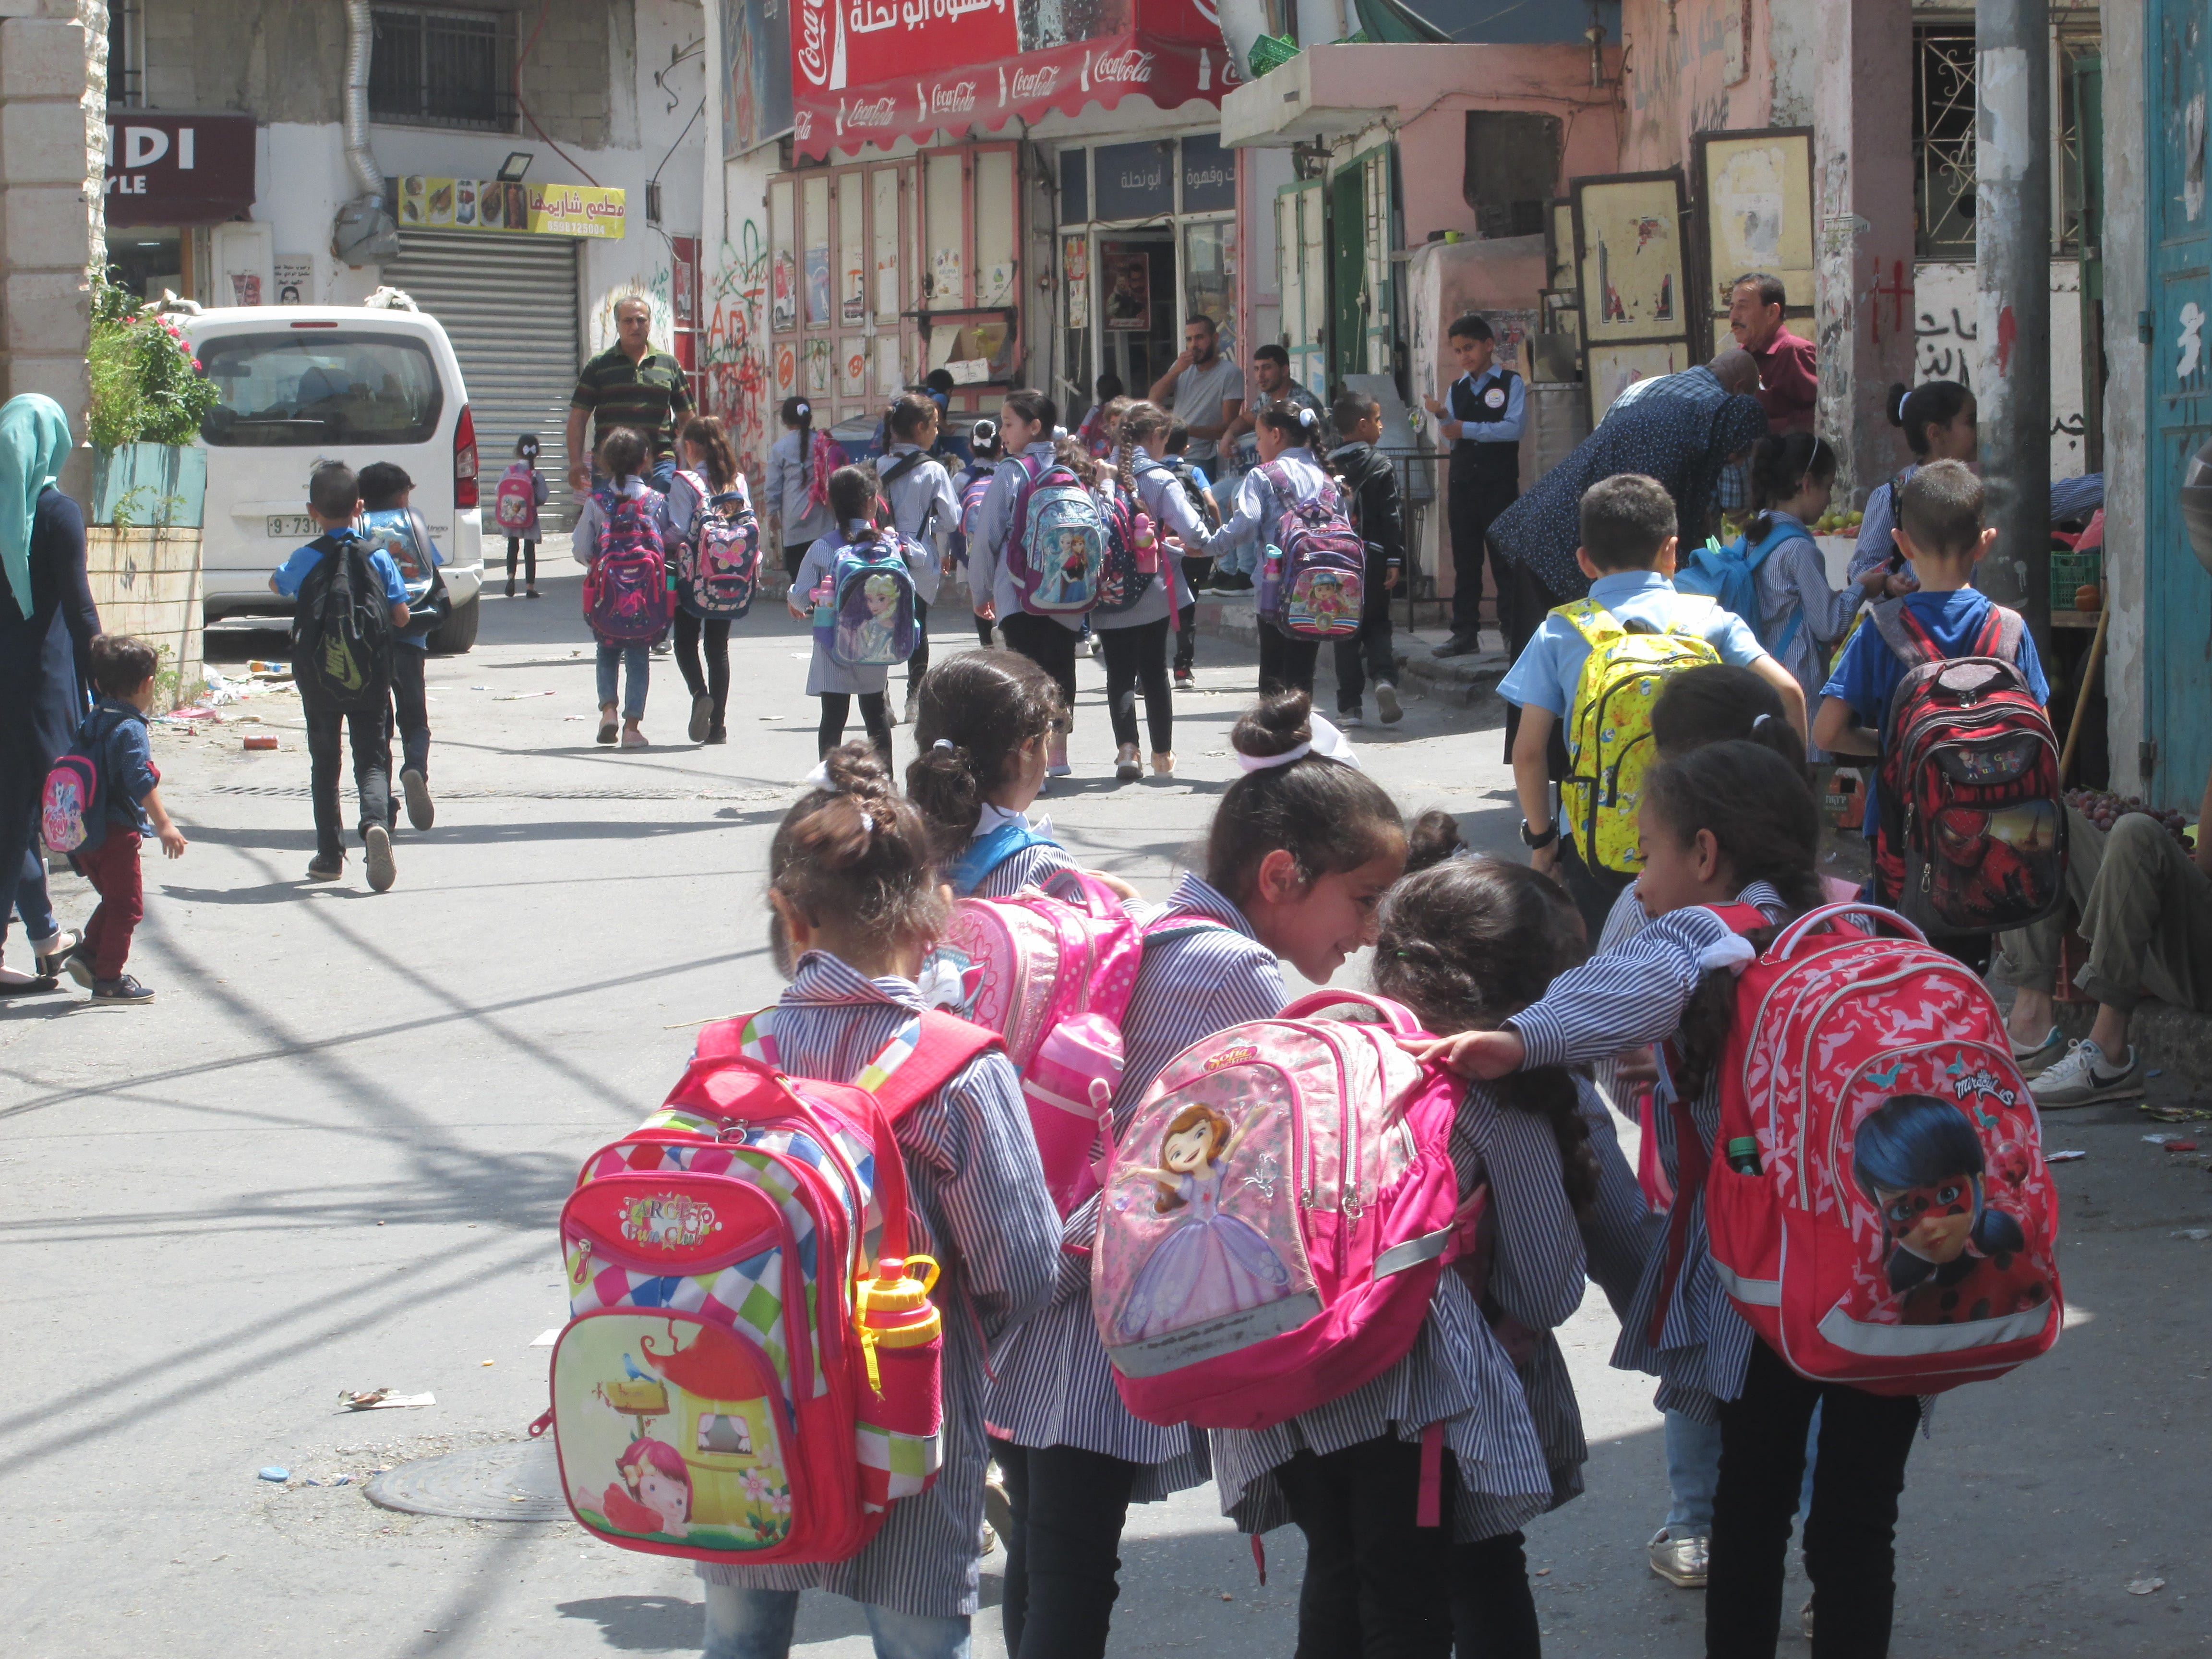 Palestinian refugees fear Trump administration funding cuts will shutter schools, clinics